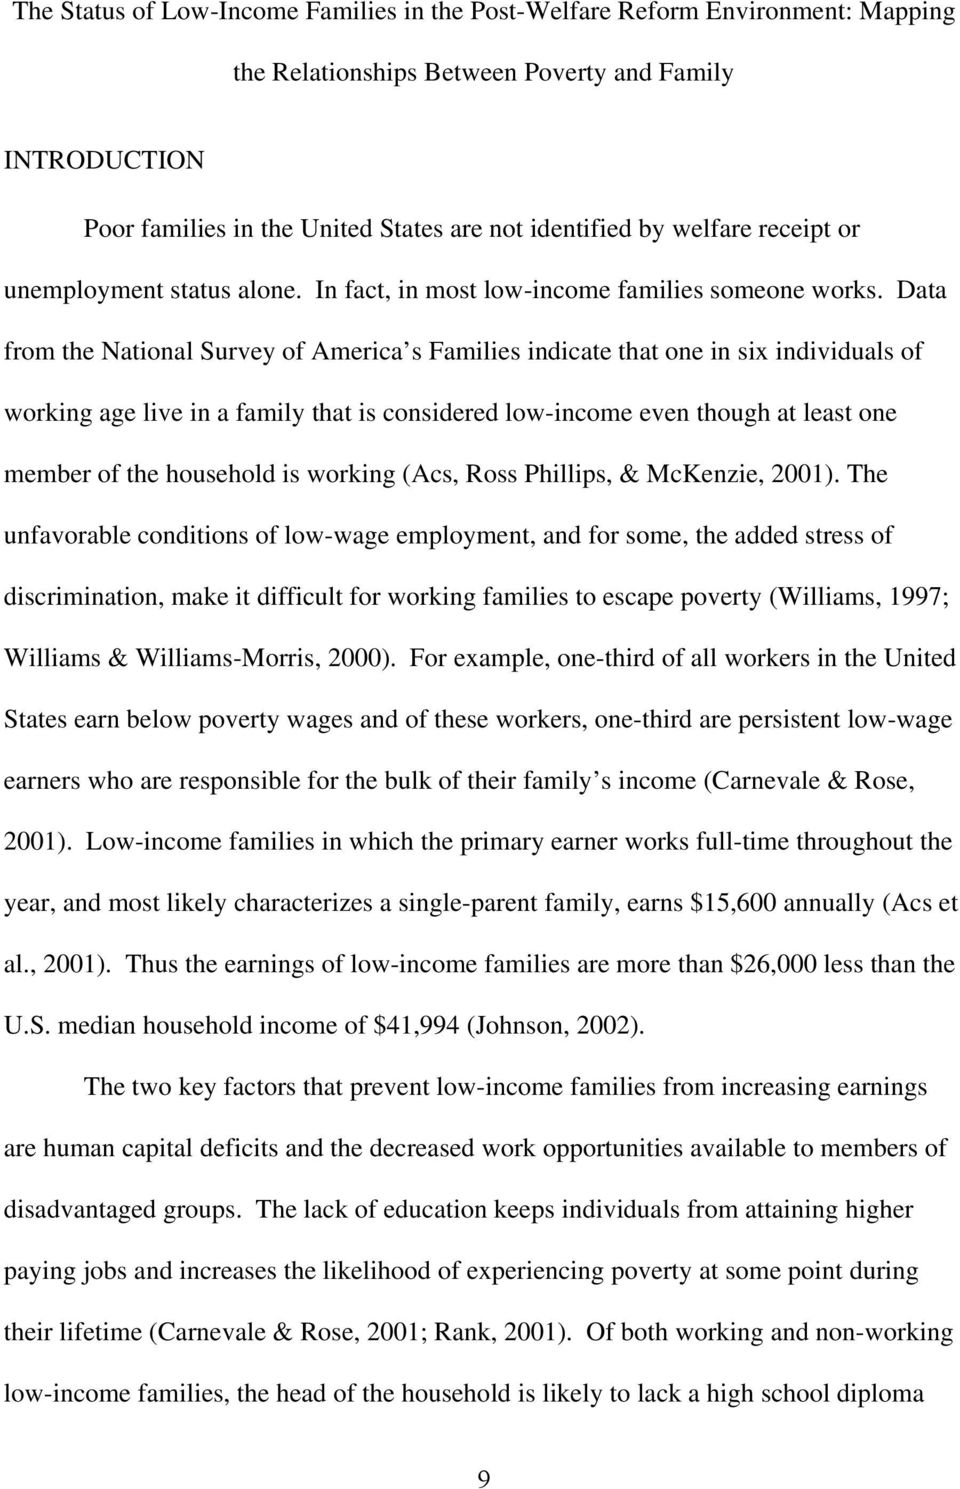 Data from the National Survey of America s Families indicate that one in six individuals of working age live in a family that is considered low-income even though at least one member of the household